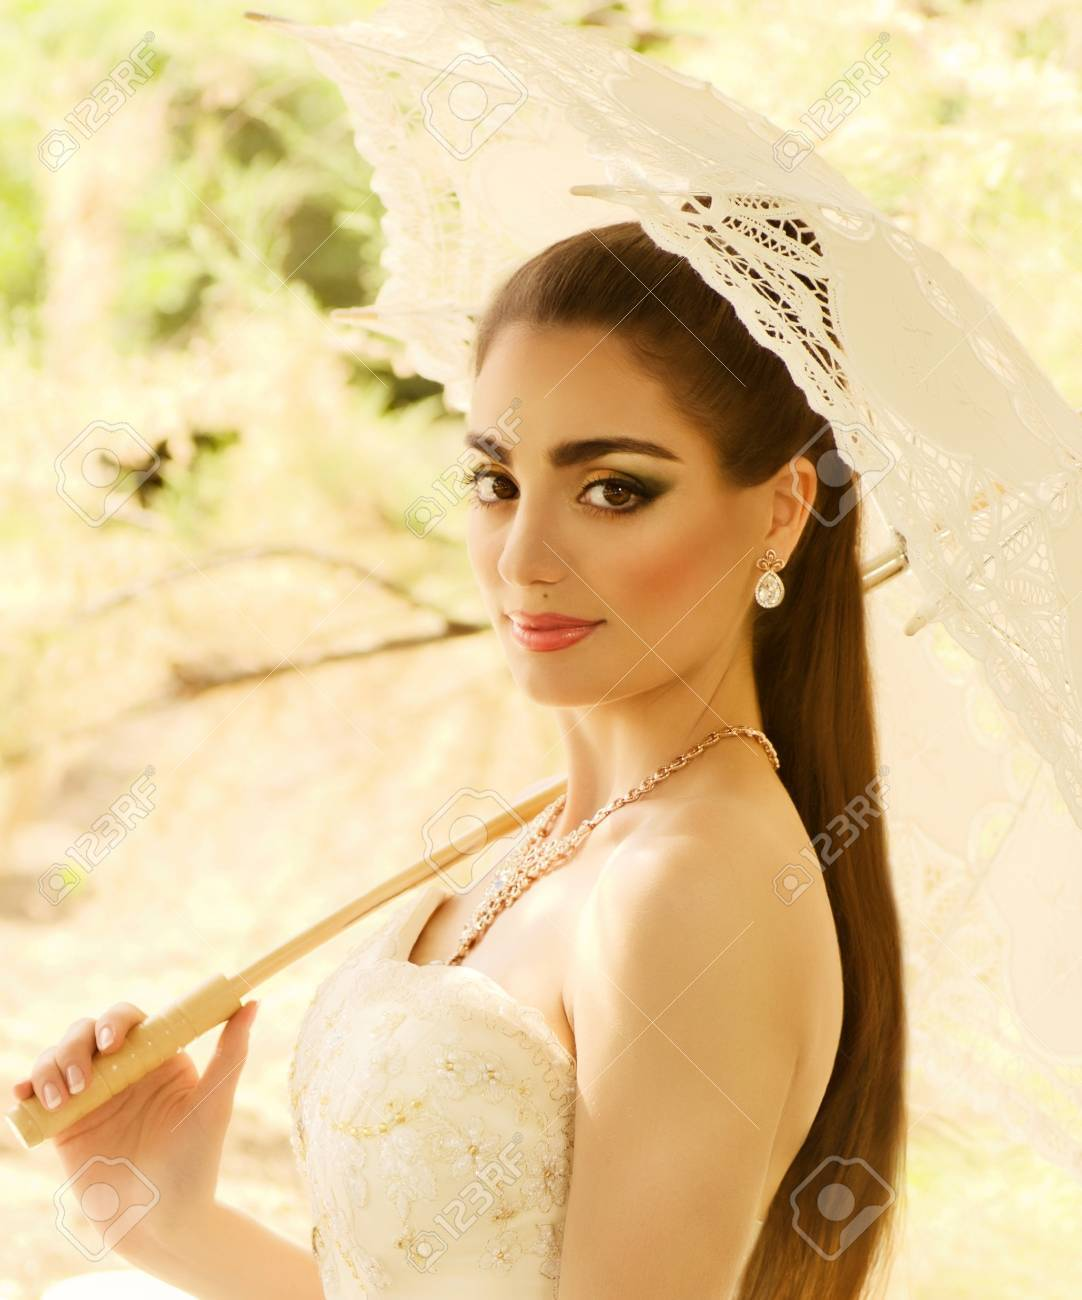 White dress and makeup - Beautiful Bride With Stylish Make Up In White Dress Stock Photo 21364058